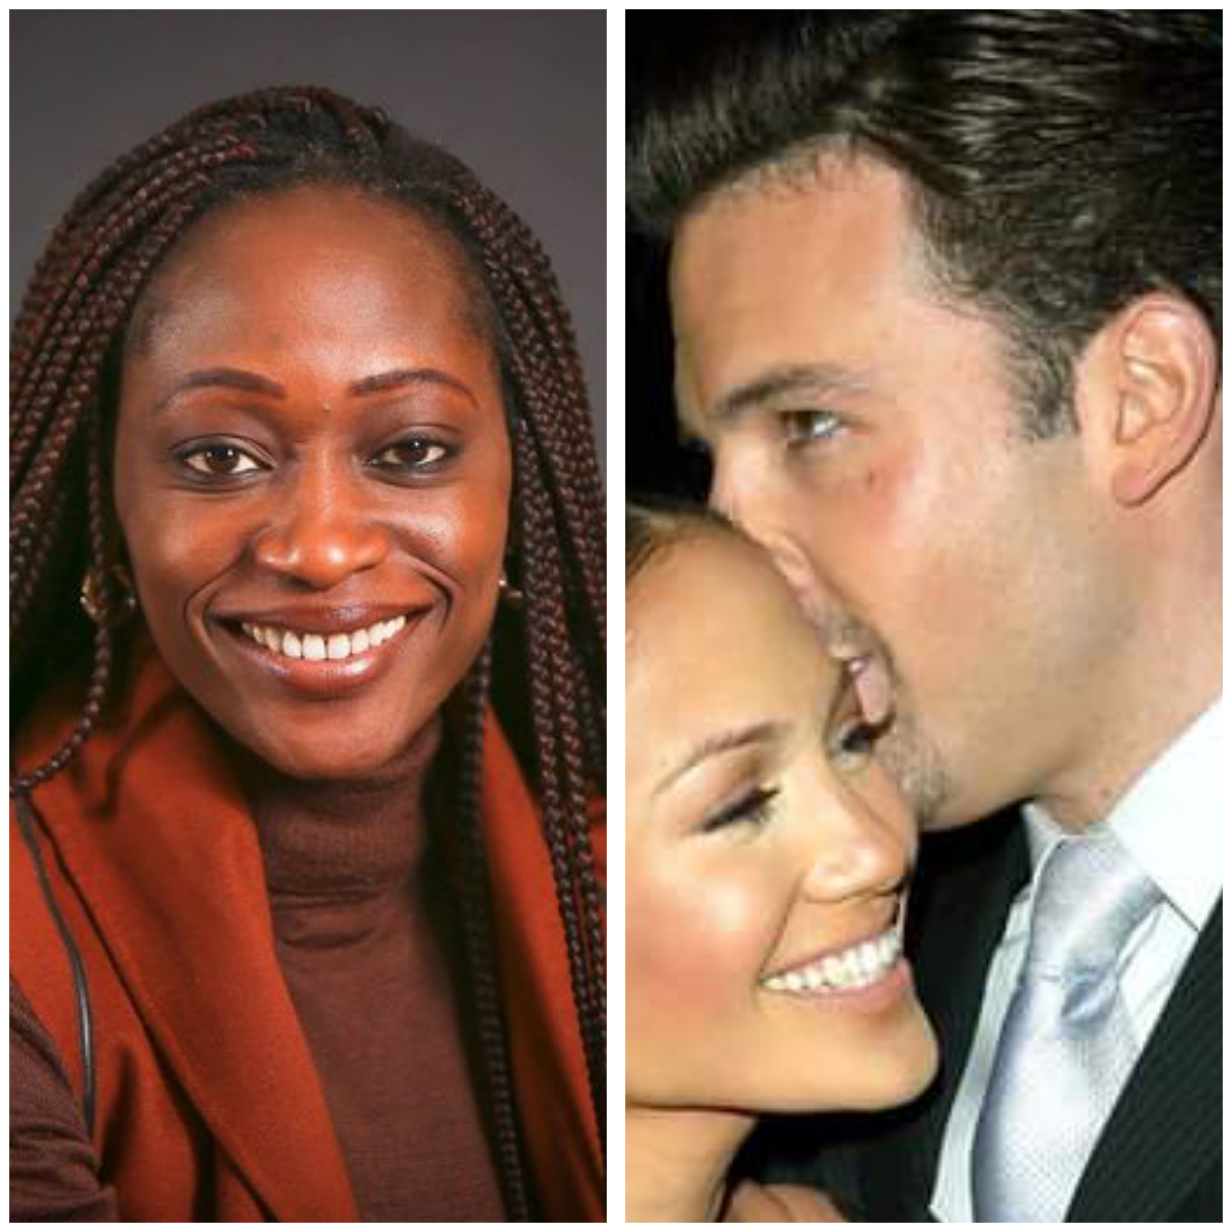 """""""I find it disturbing how quickly she moves from one man to the next"""" - Hafsat Abiola-Costello reacts to Jennifer Lopez and Ben Affleck's reunion"""